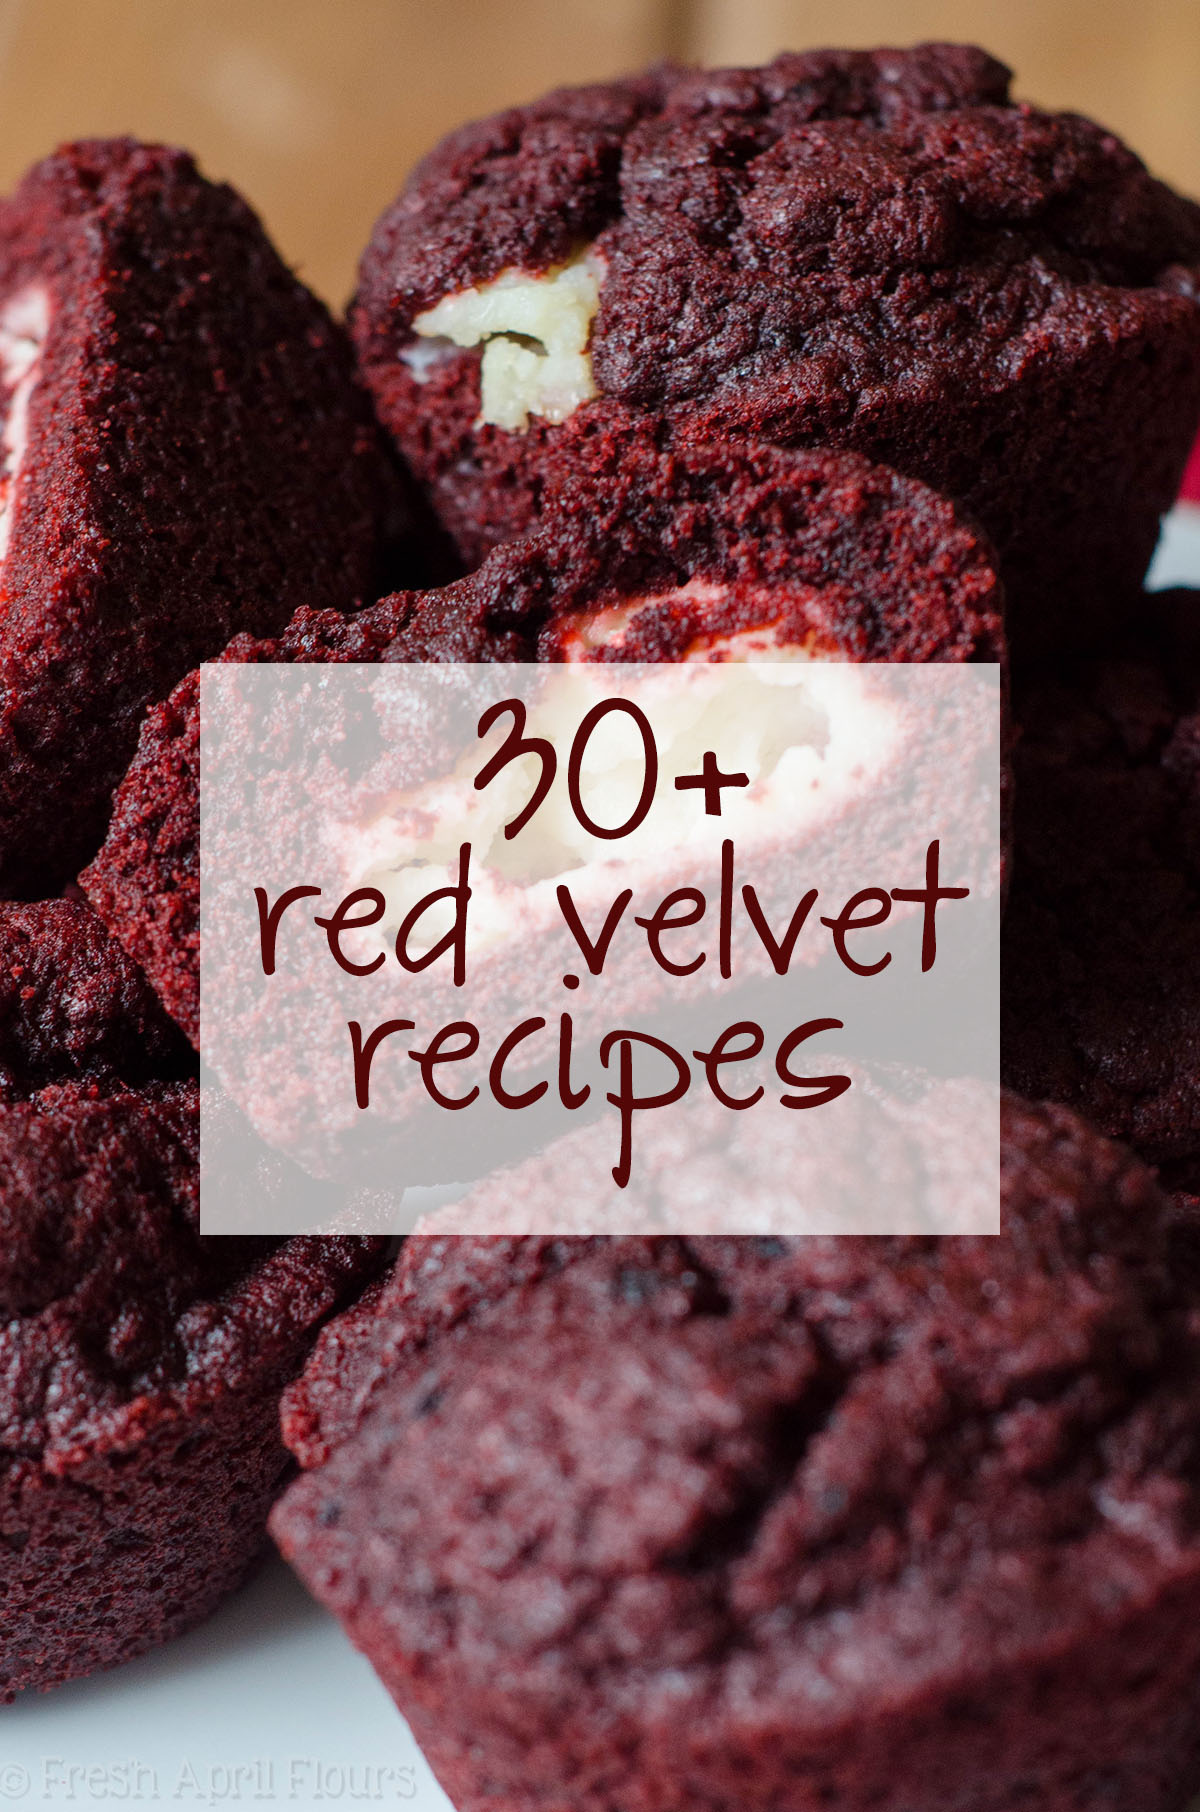 30+ Red Velvet Recipes